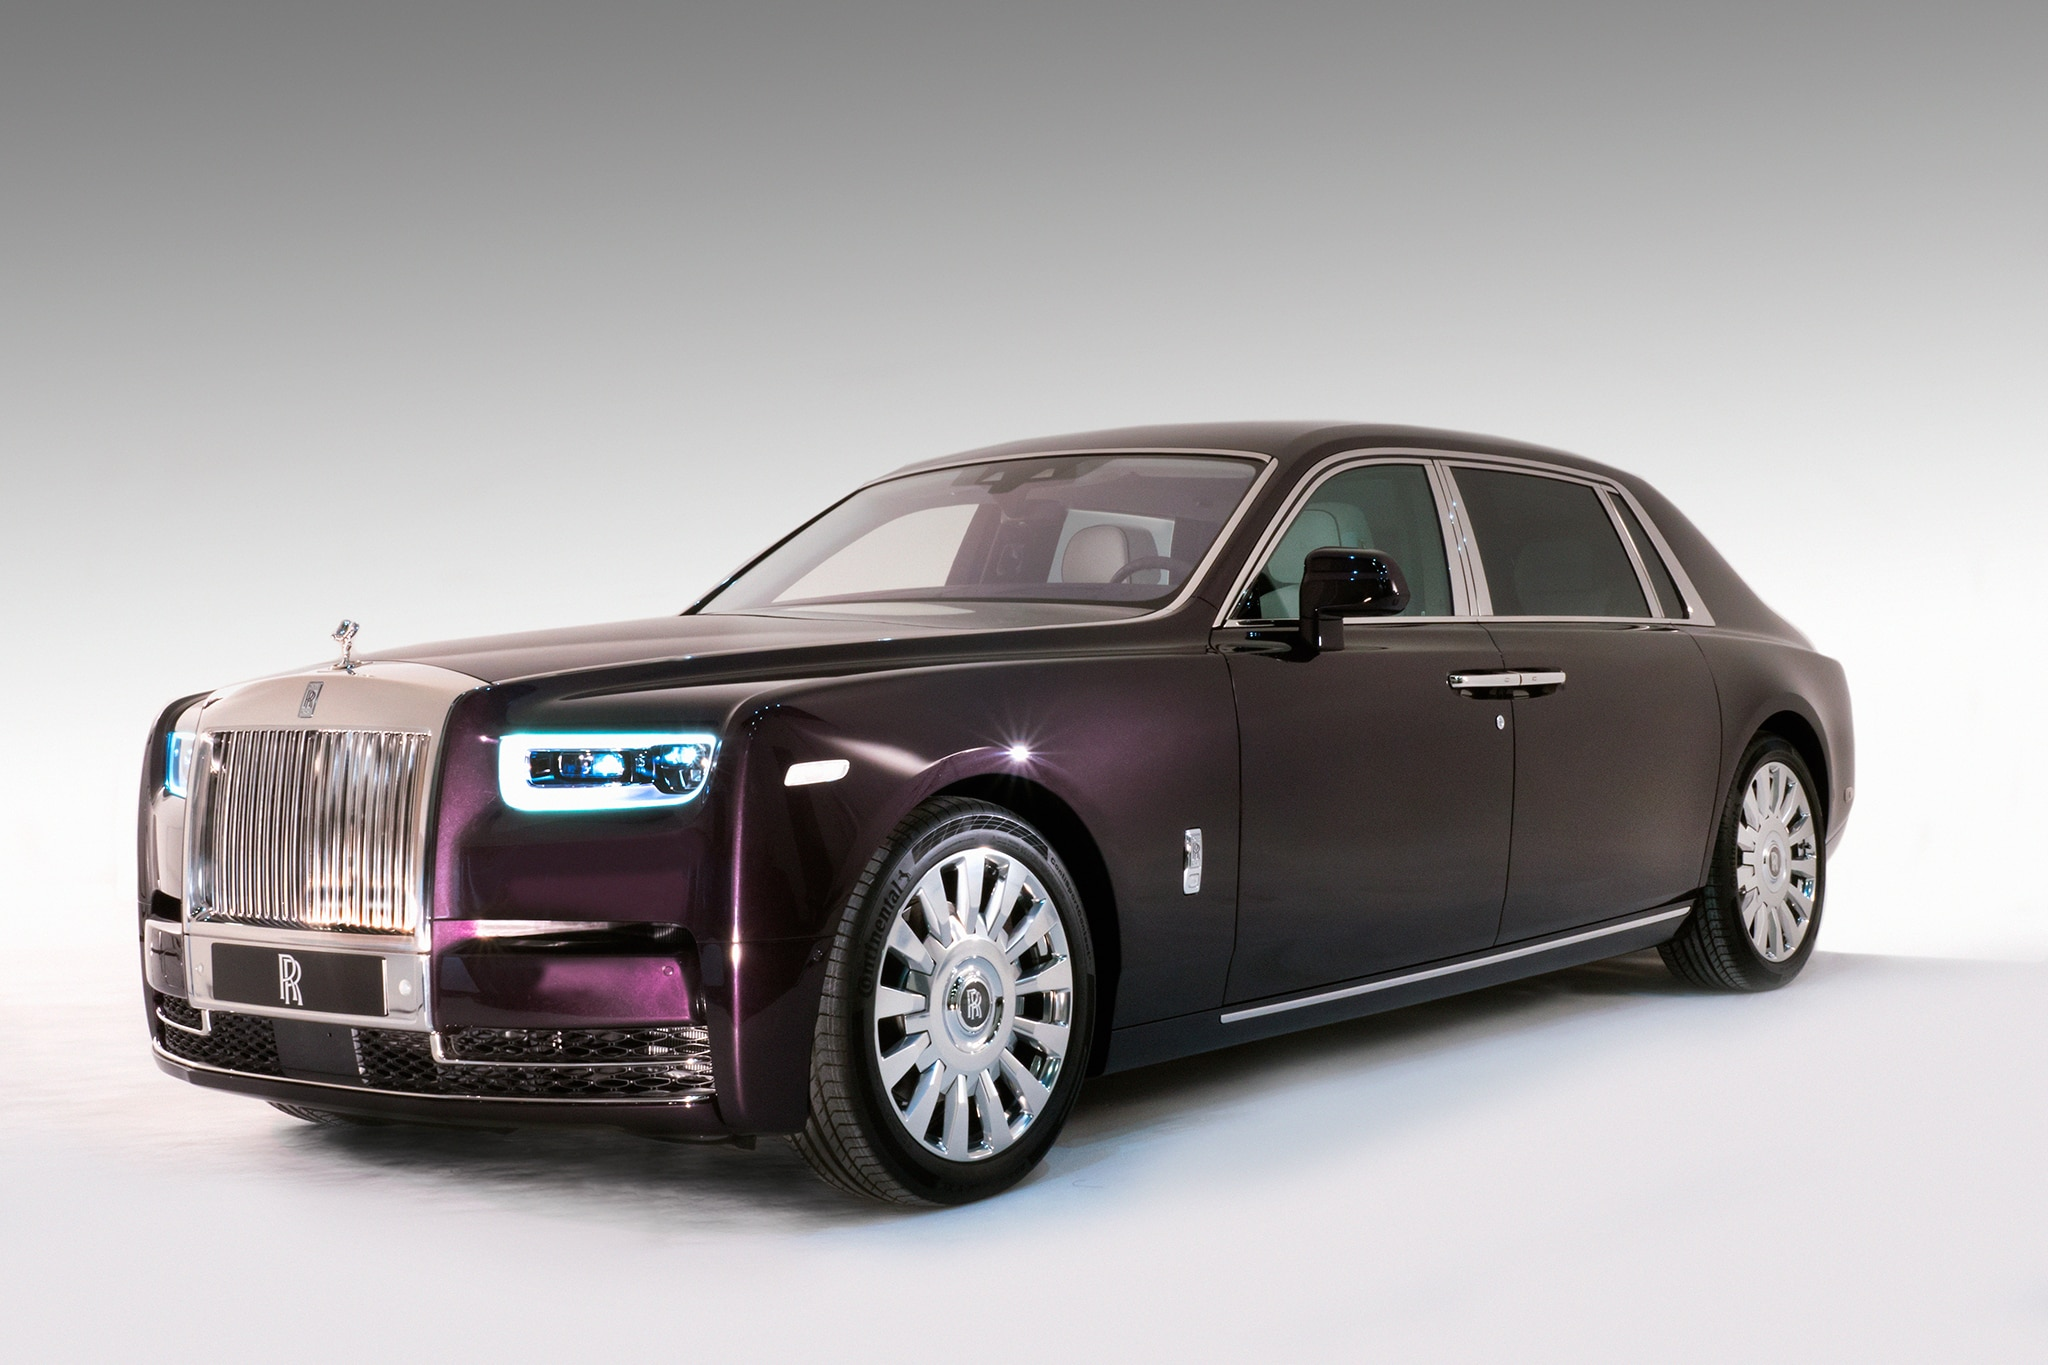 2018 Rolls Royce Phantom VIII Front Three Quarter 06